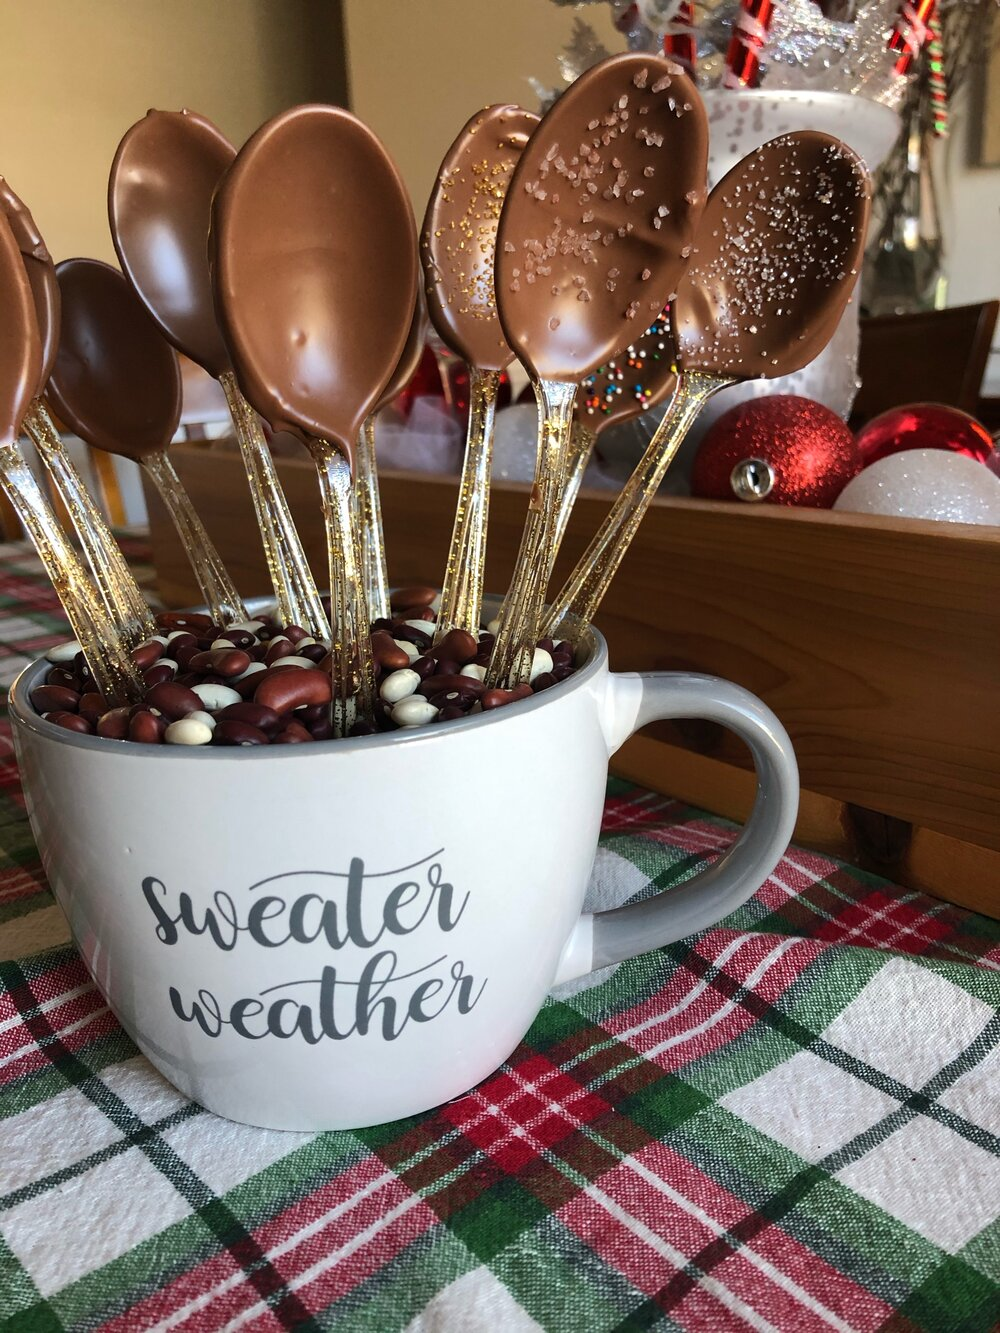 Homemade hot chocolate spoons from Missouri girl blog.